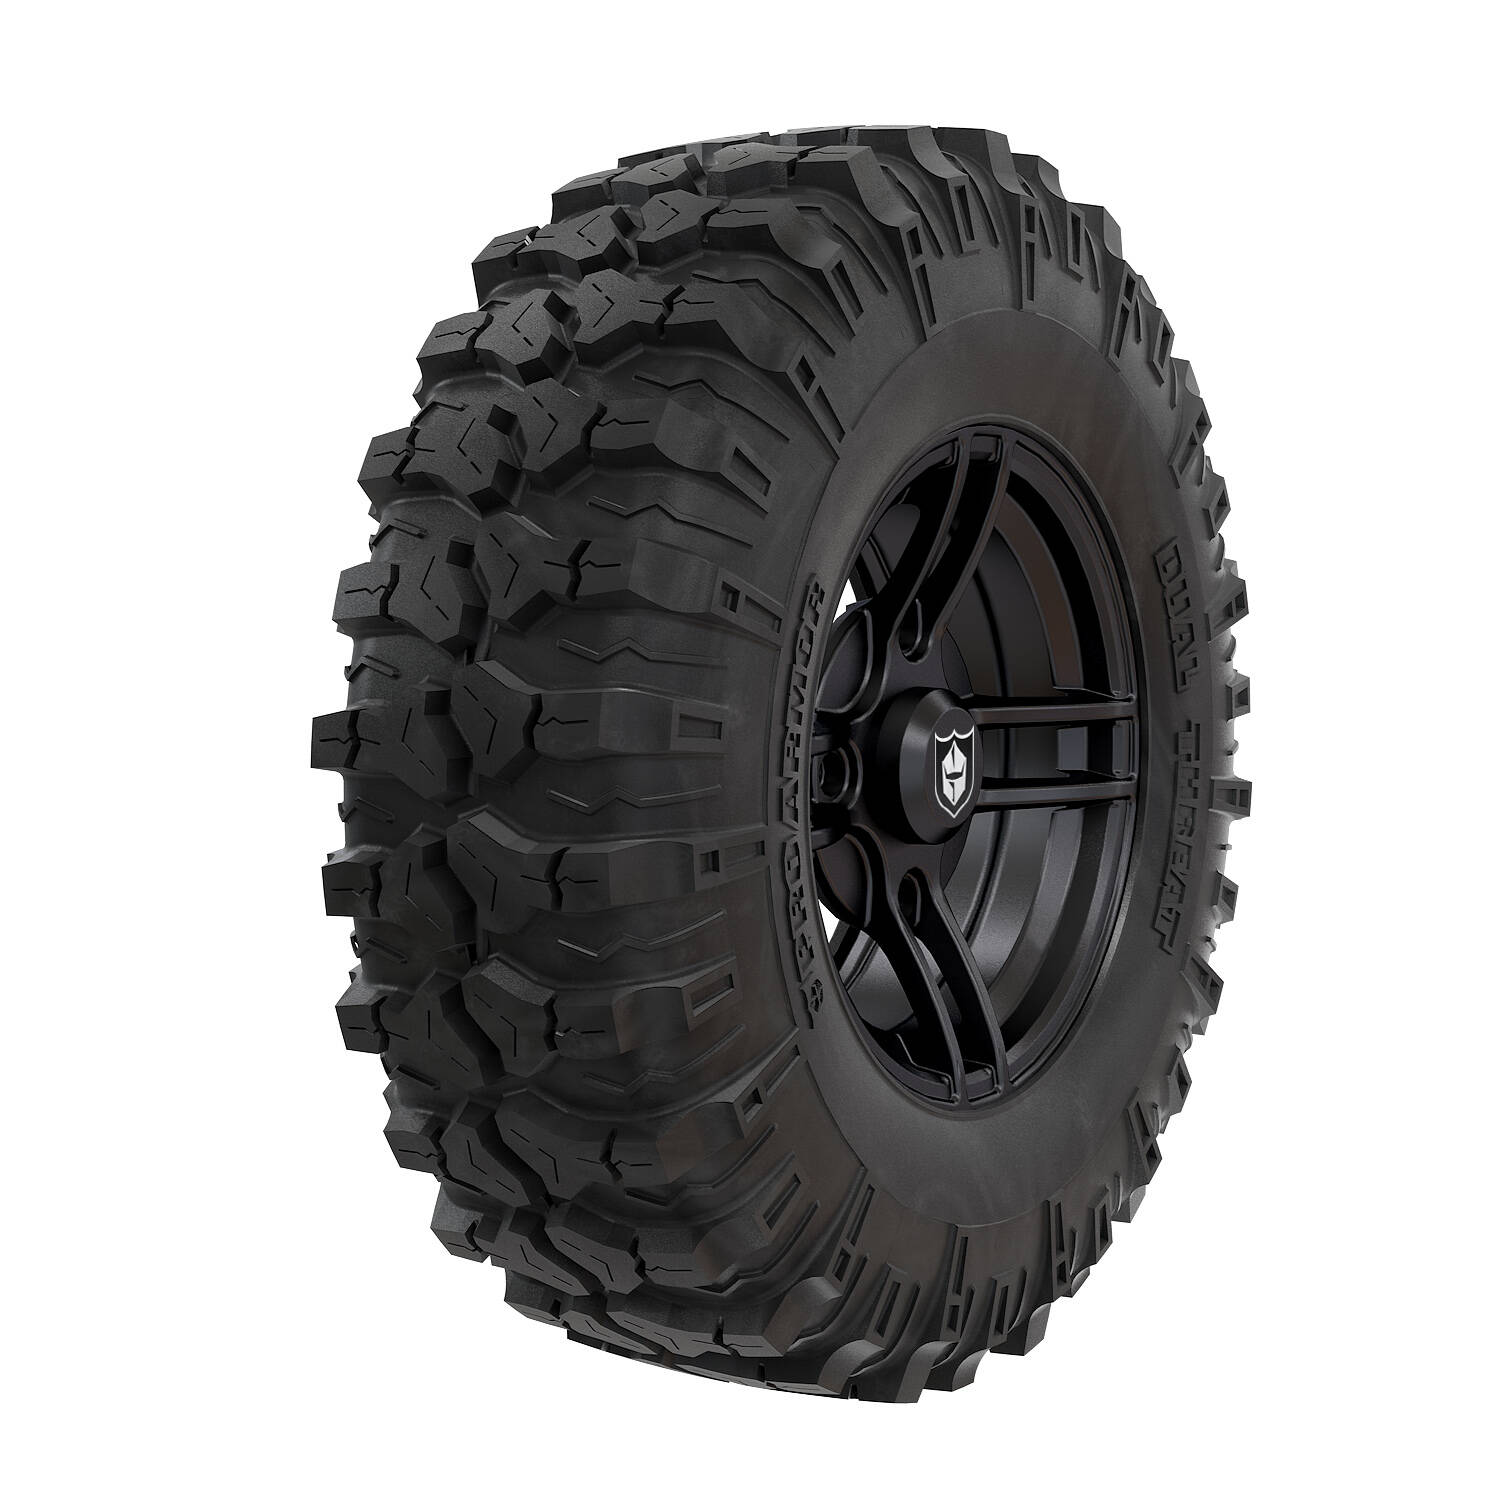 Wheel & Tire Set: Pro Armor® Split - Matte Black & Dual-Threat - 29""